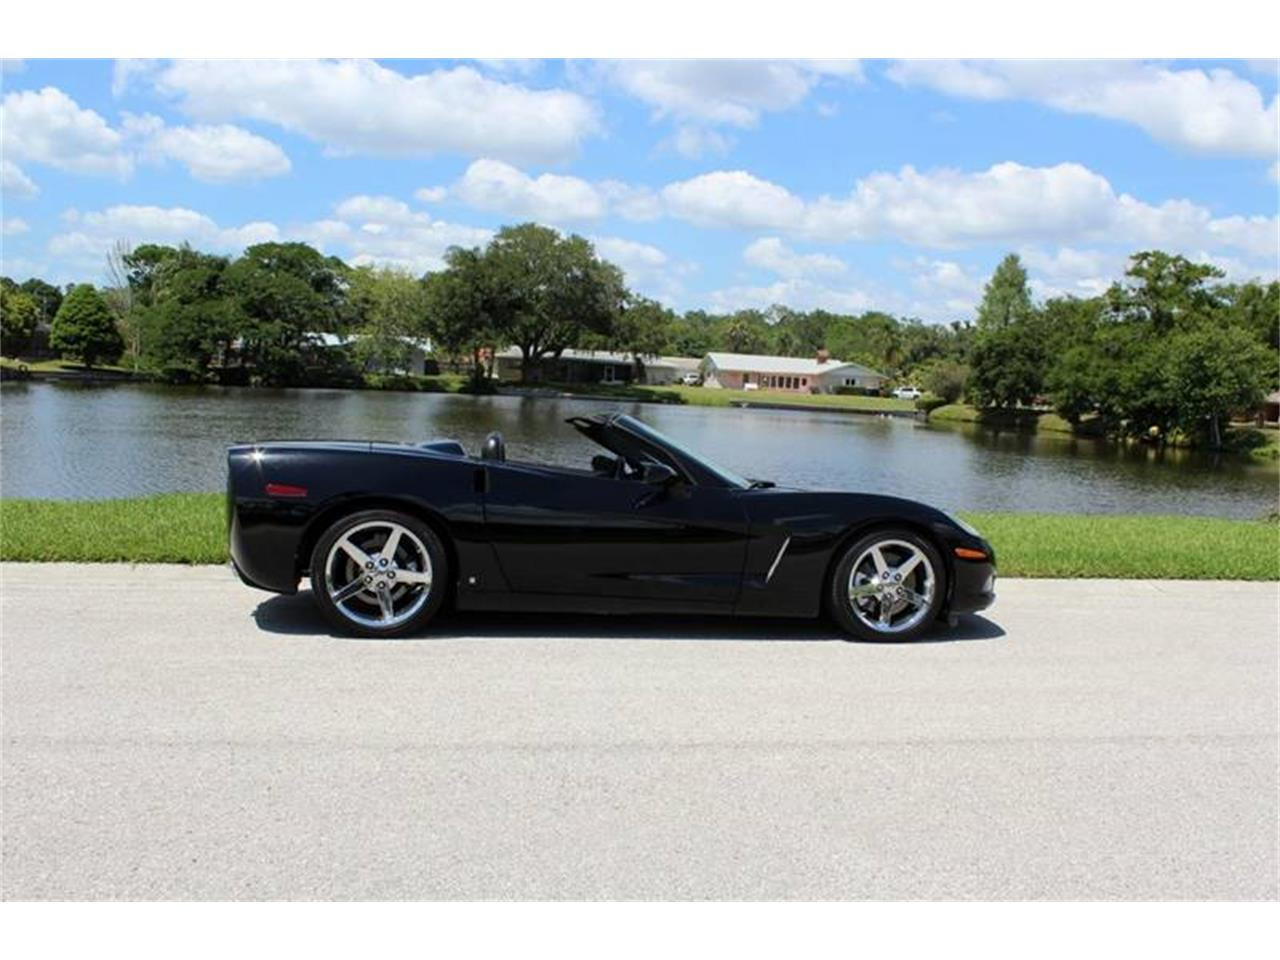 2007 Chevrolet Corvette (CC-1214437) for sale in Clearwater, Florida